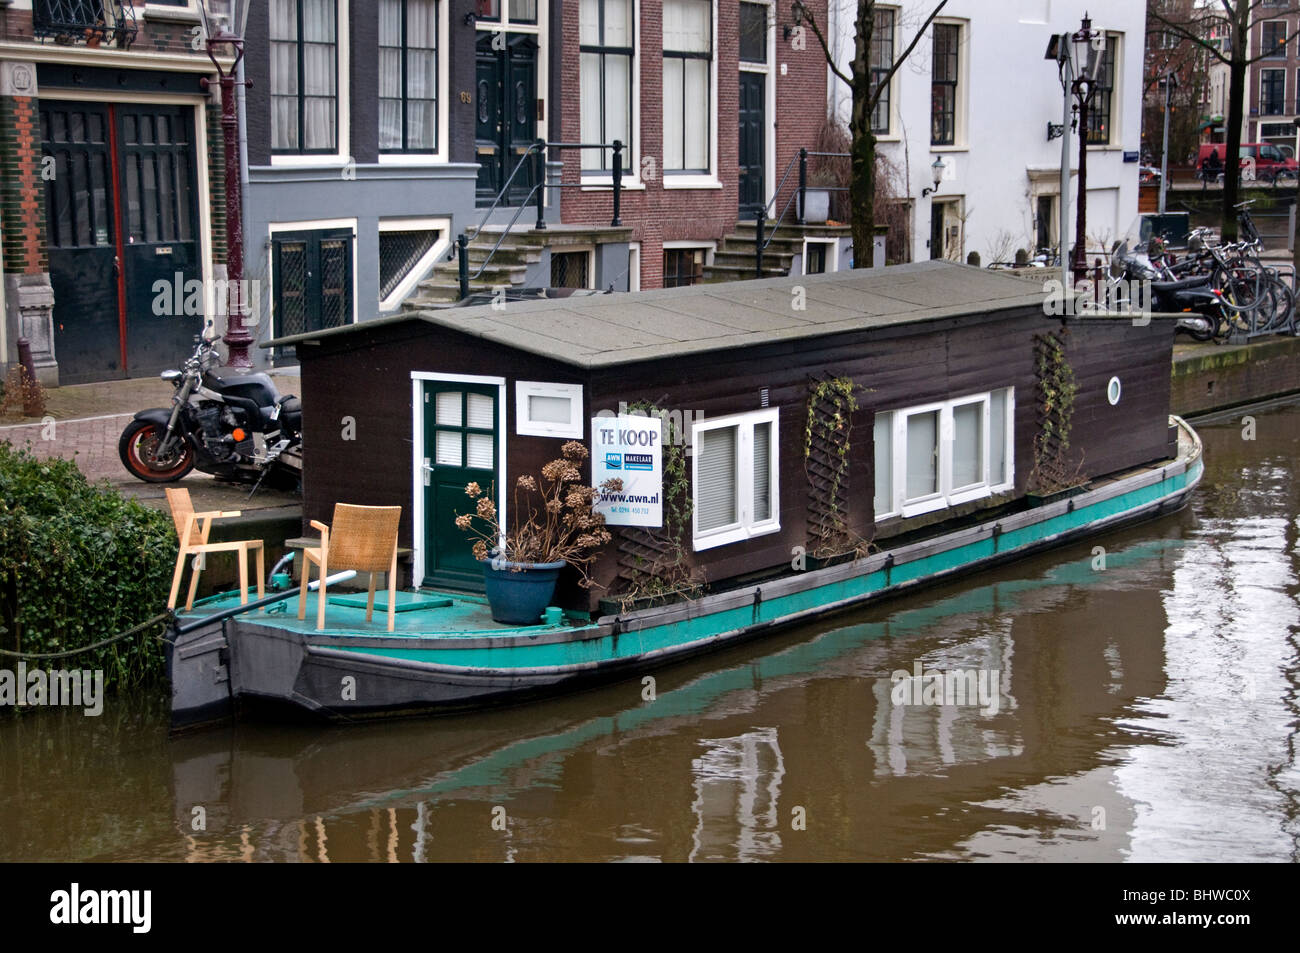 Very Small Little House Boat Groenburgwal Amsterdam - Stock Image